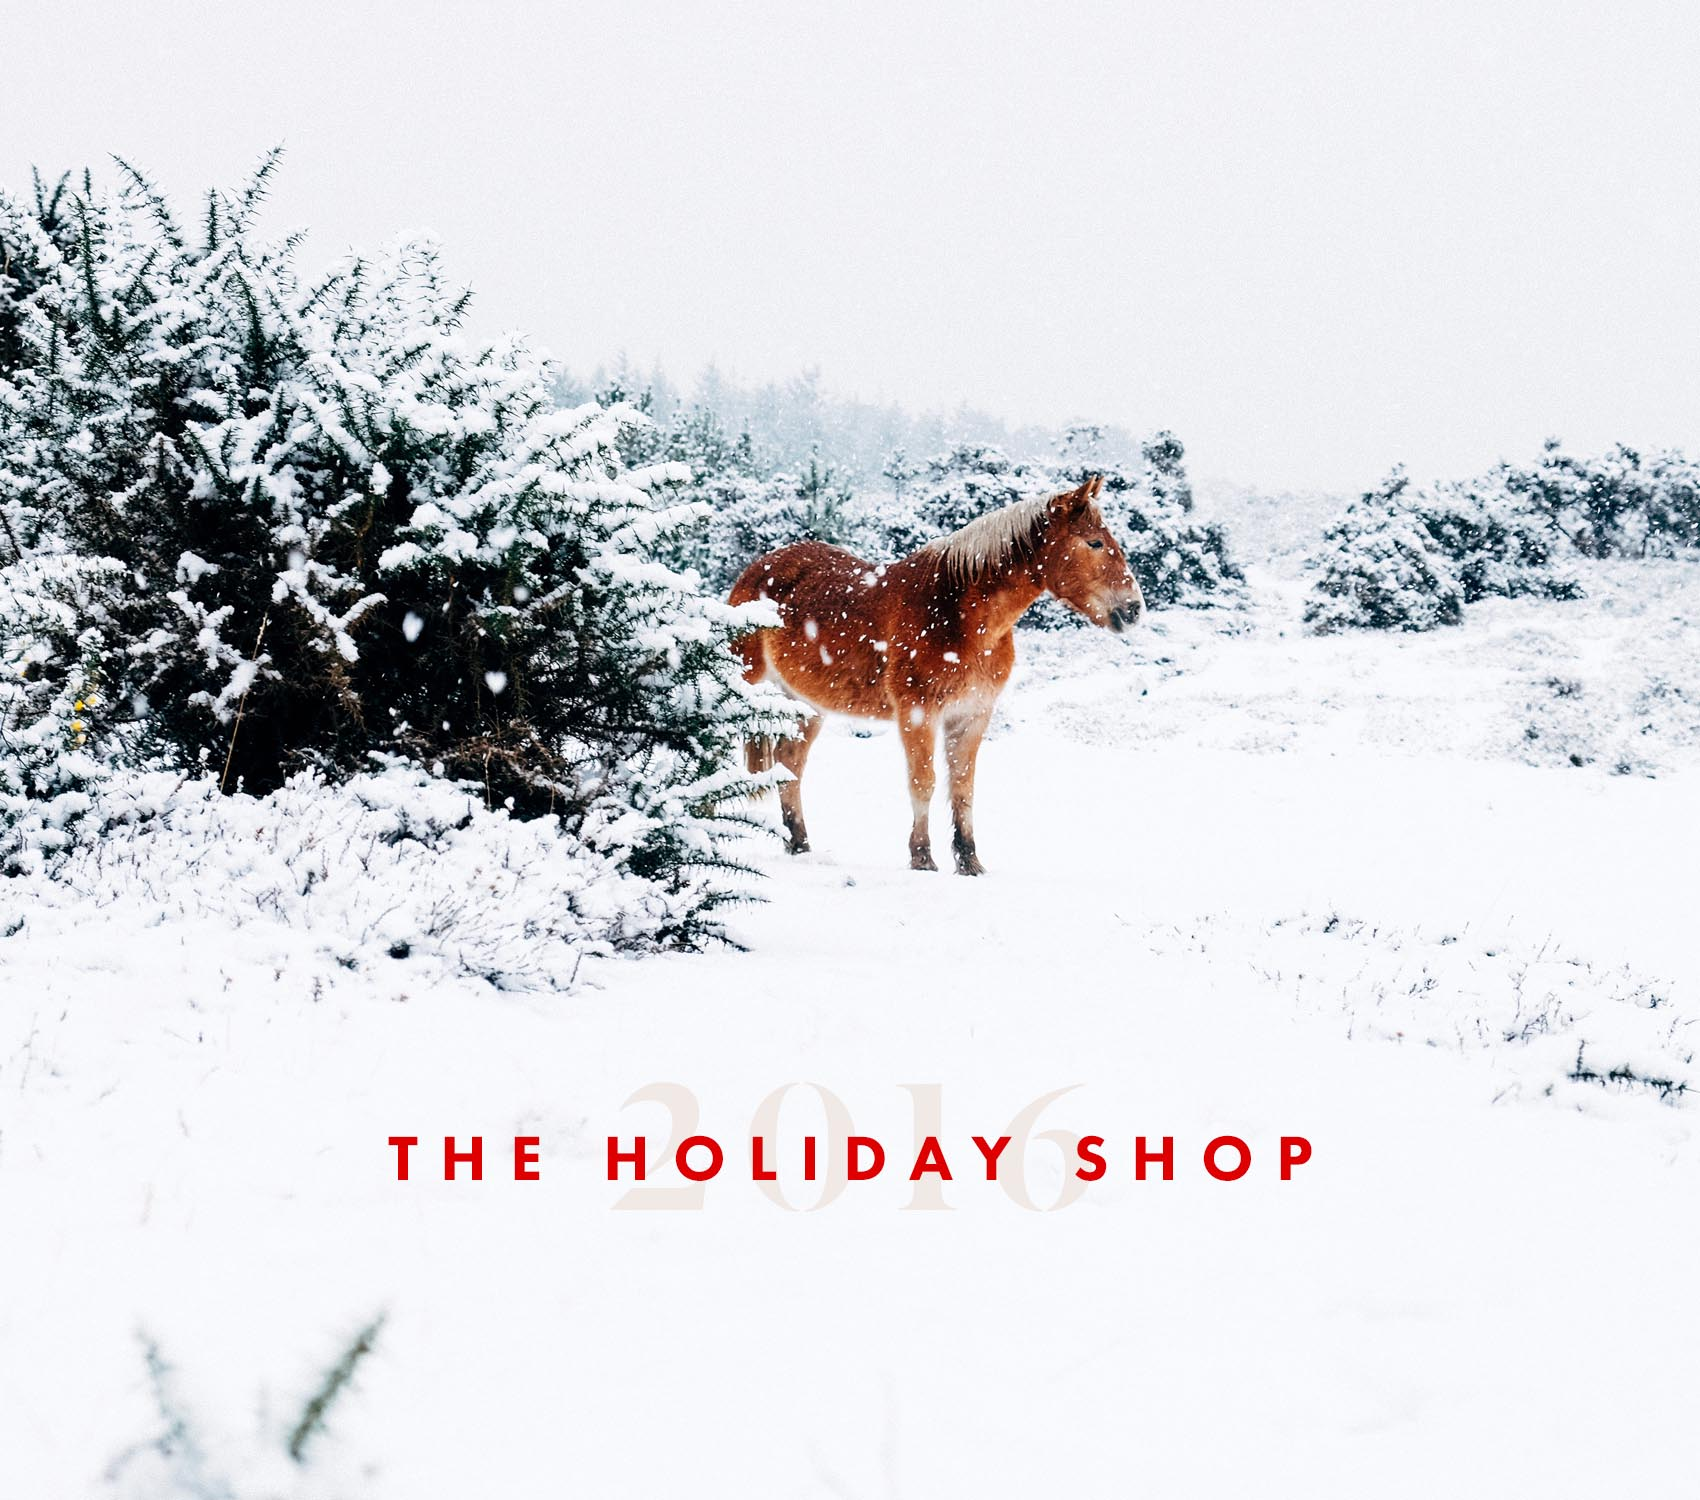 the-holiday-shop-by-victoria-mcginley-studio